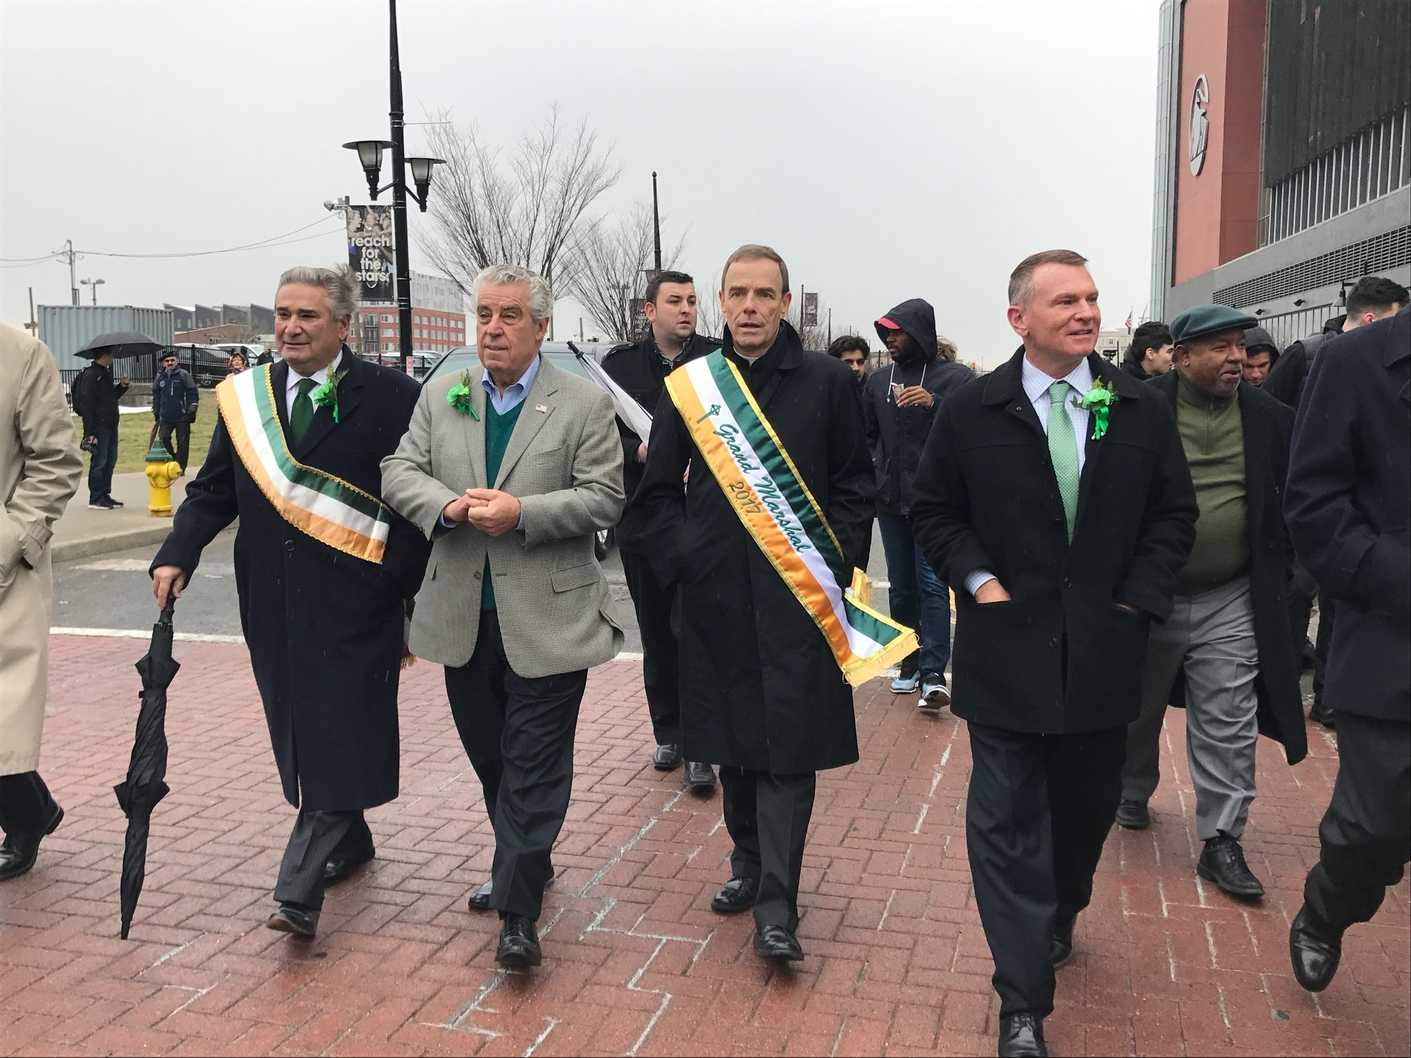 Fr. Edwin Leahy O.S.B. walks near the Prudential Center for the St. Patrick's Day parade.